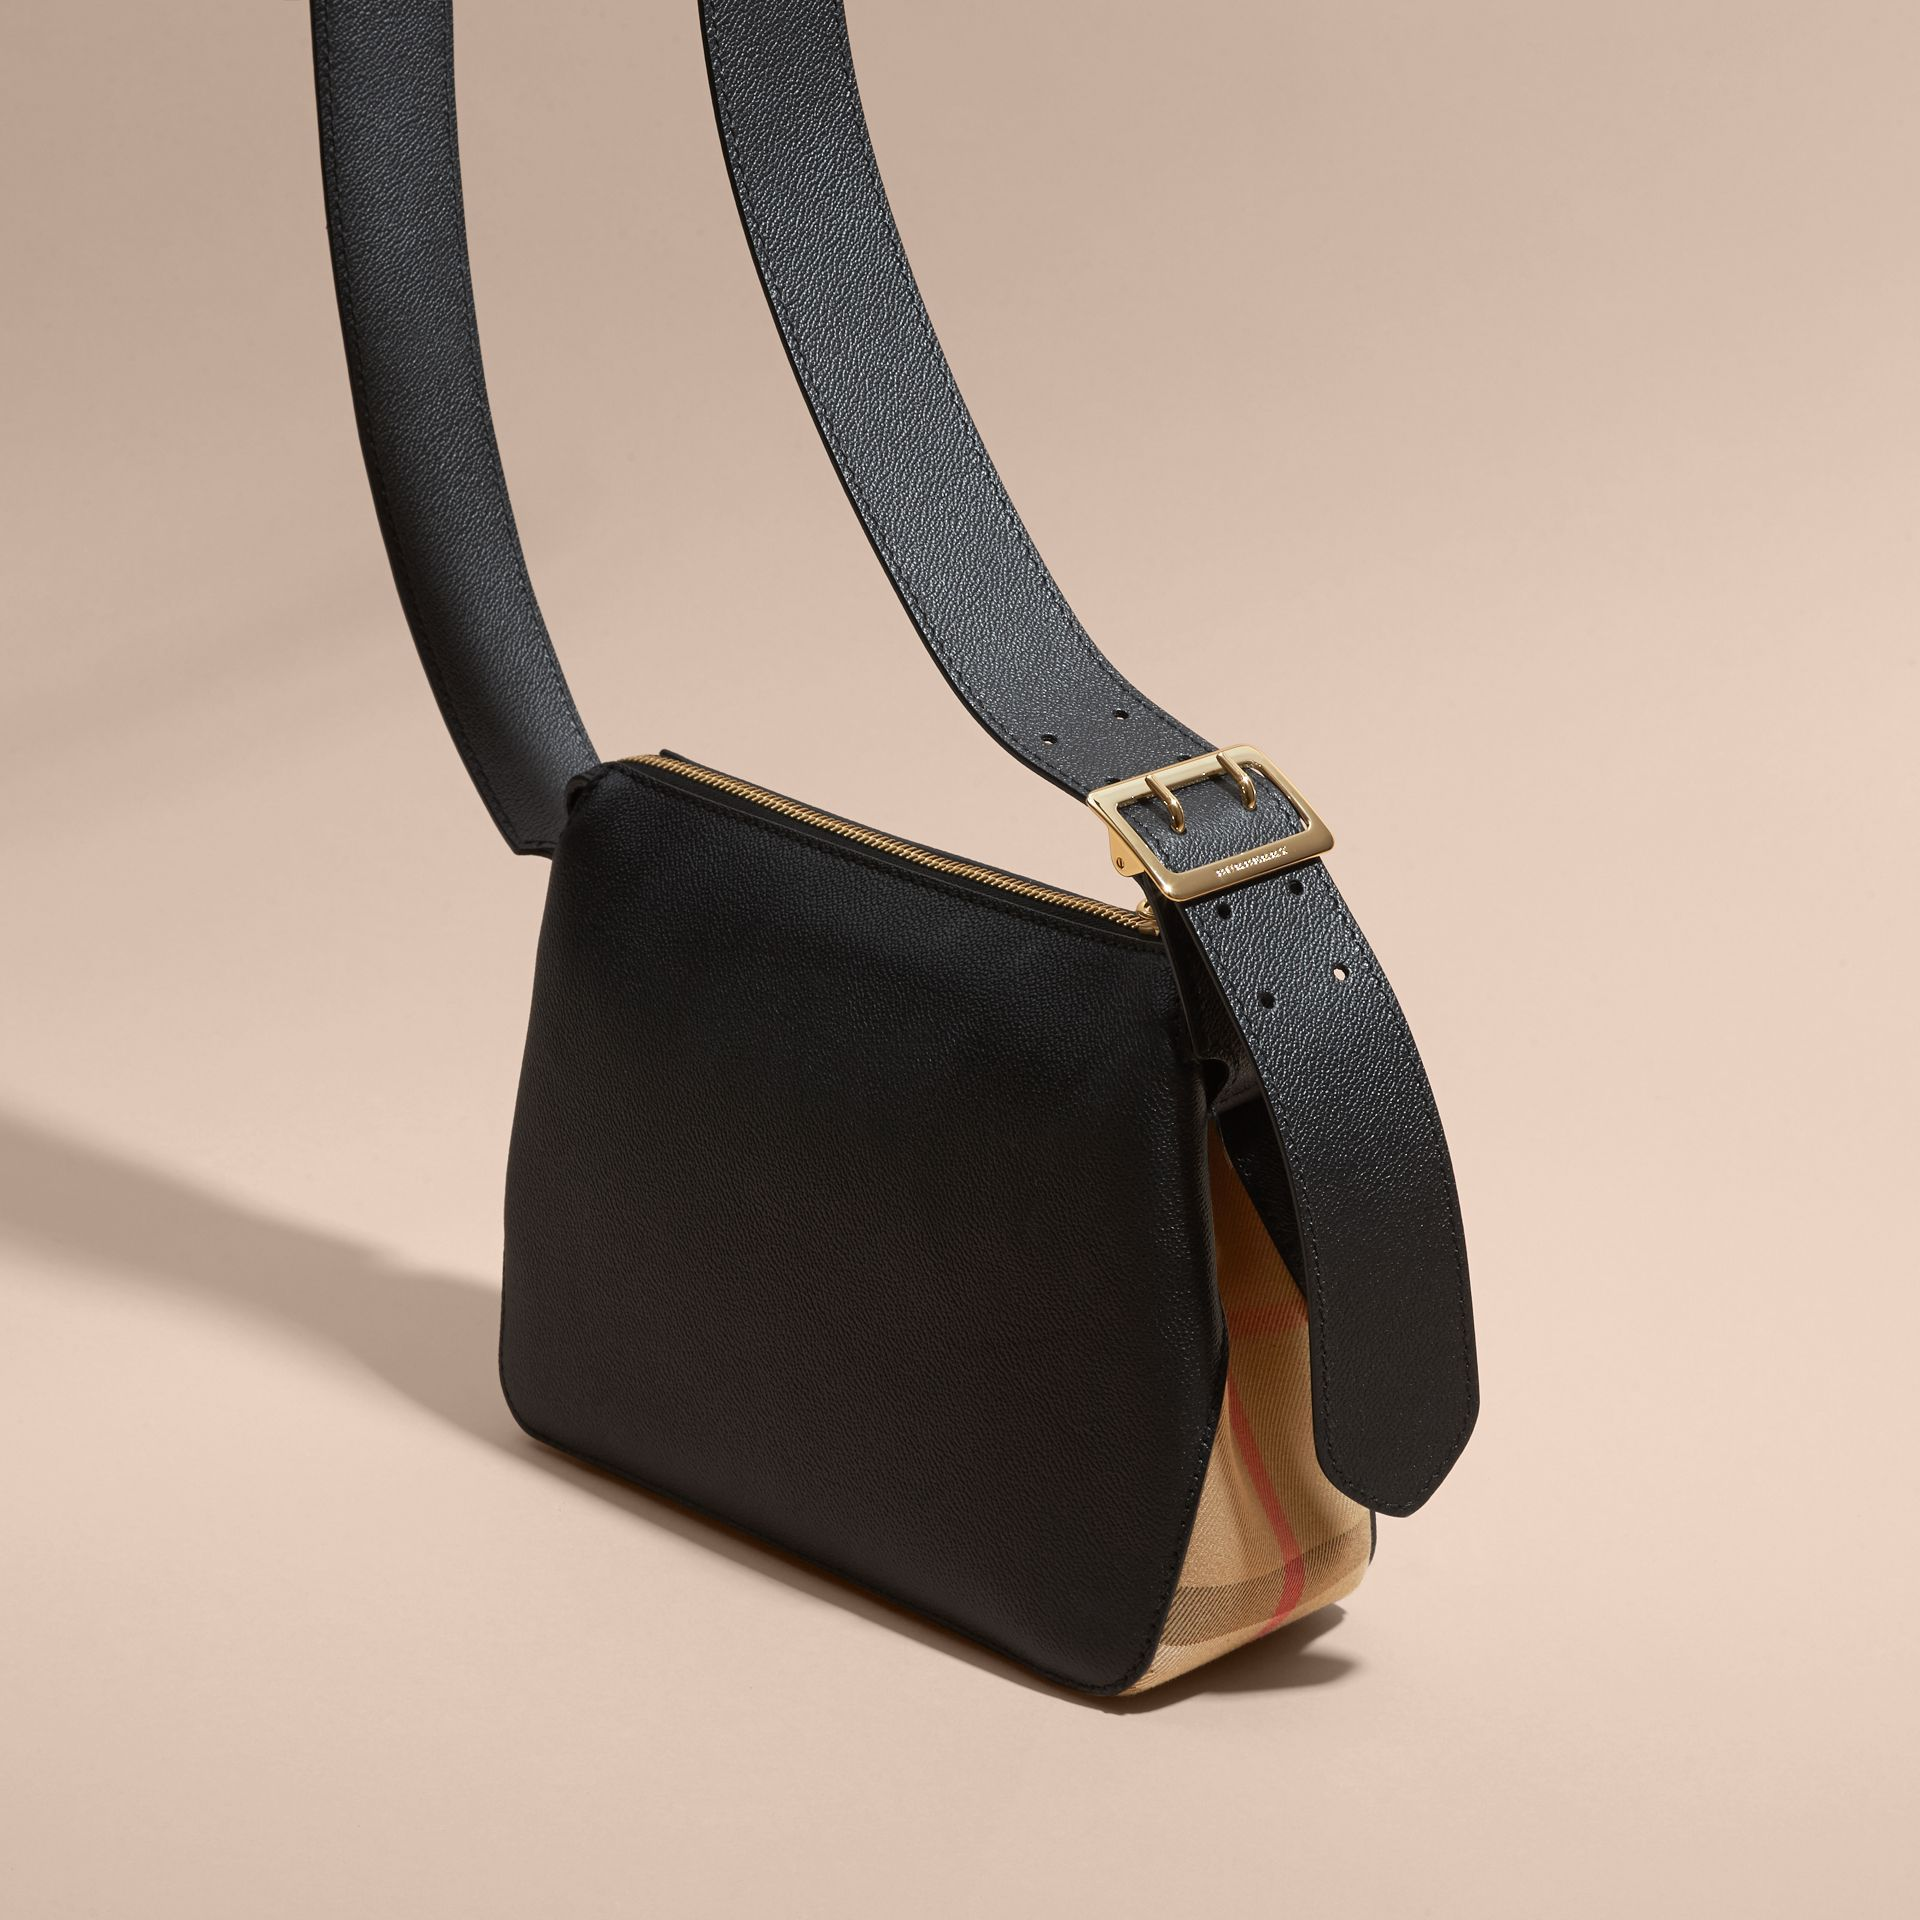 Buckle Detail Leather and House Check Crossbody Bag in Black - Women | Burberry Canada - gallery image 4